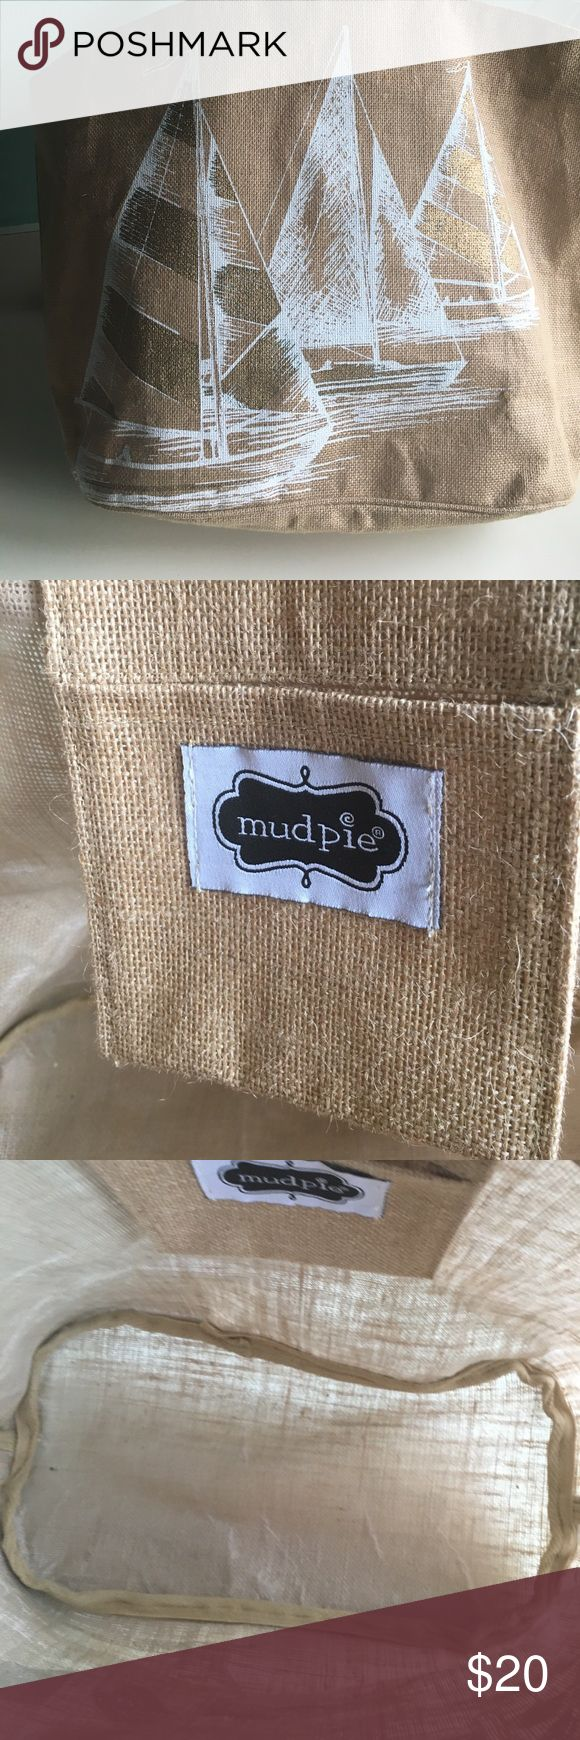 "Mudpie burlap large beach bag with leather straps Mudpie burlap large beach tote 24"" x 16"" handles are 20 inches.    Brand new condition! Mud Pie Bags Totes"